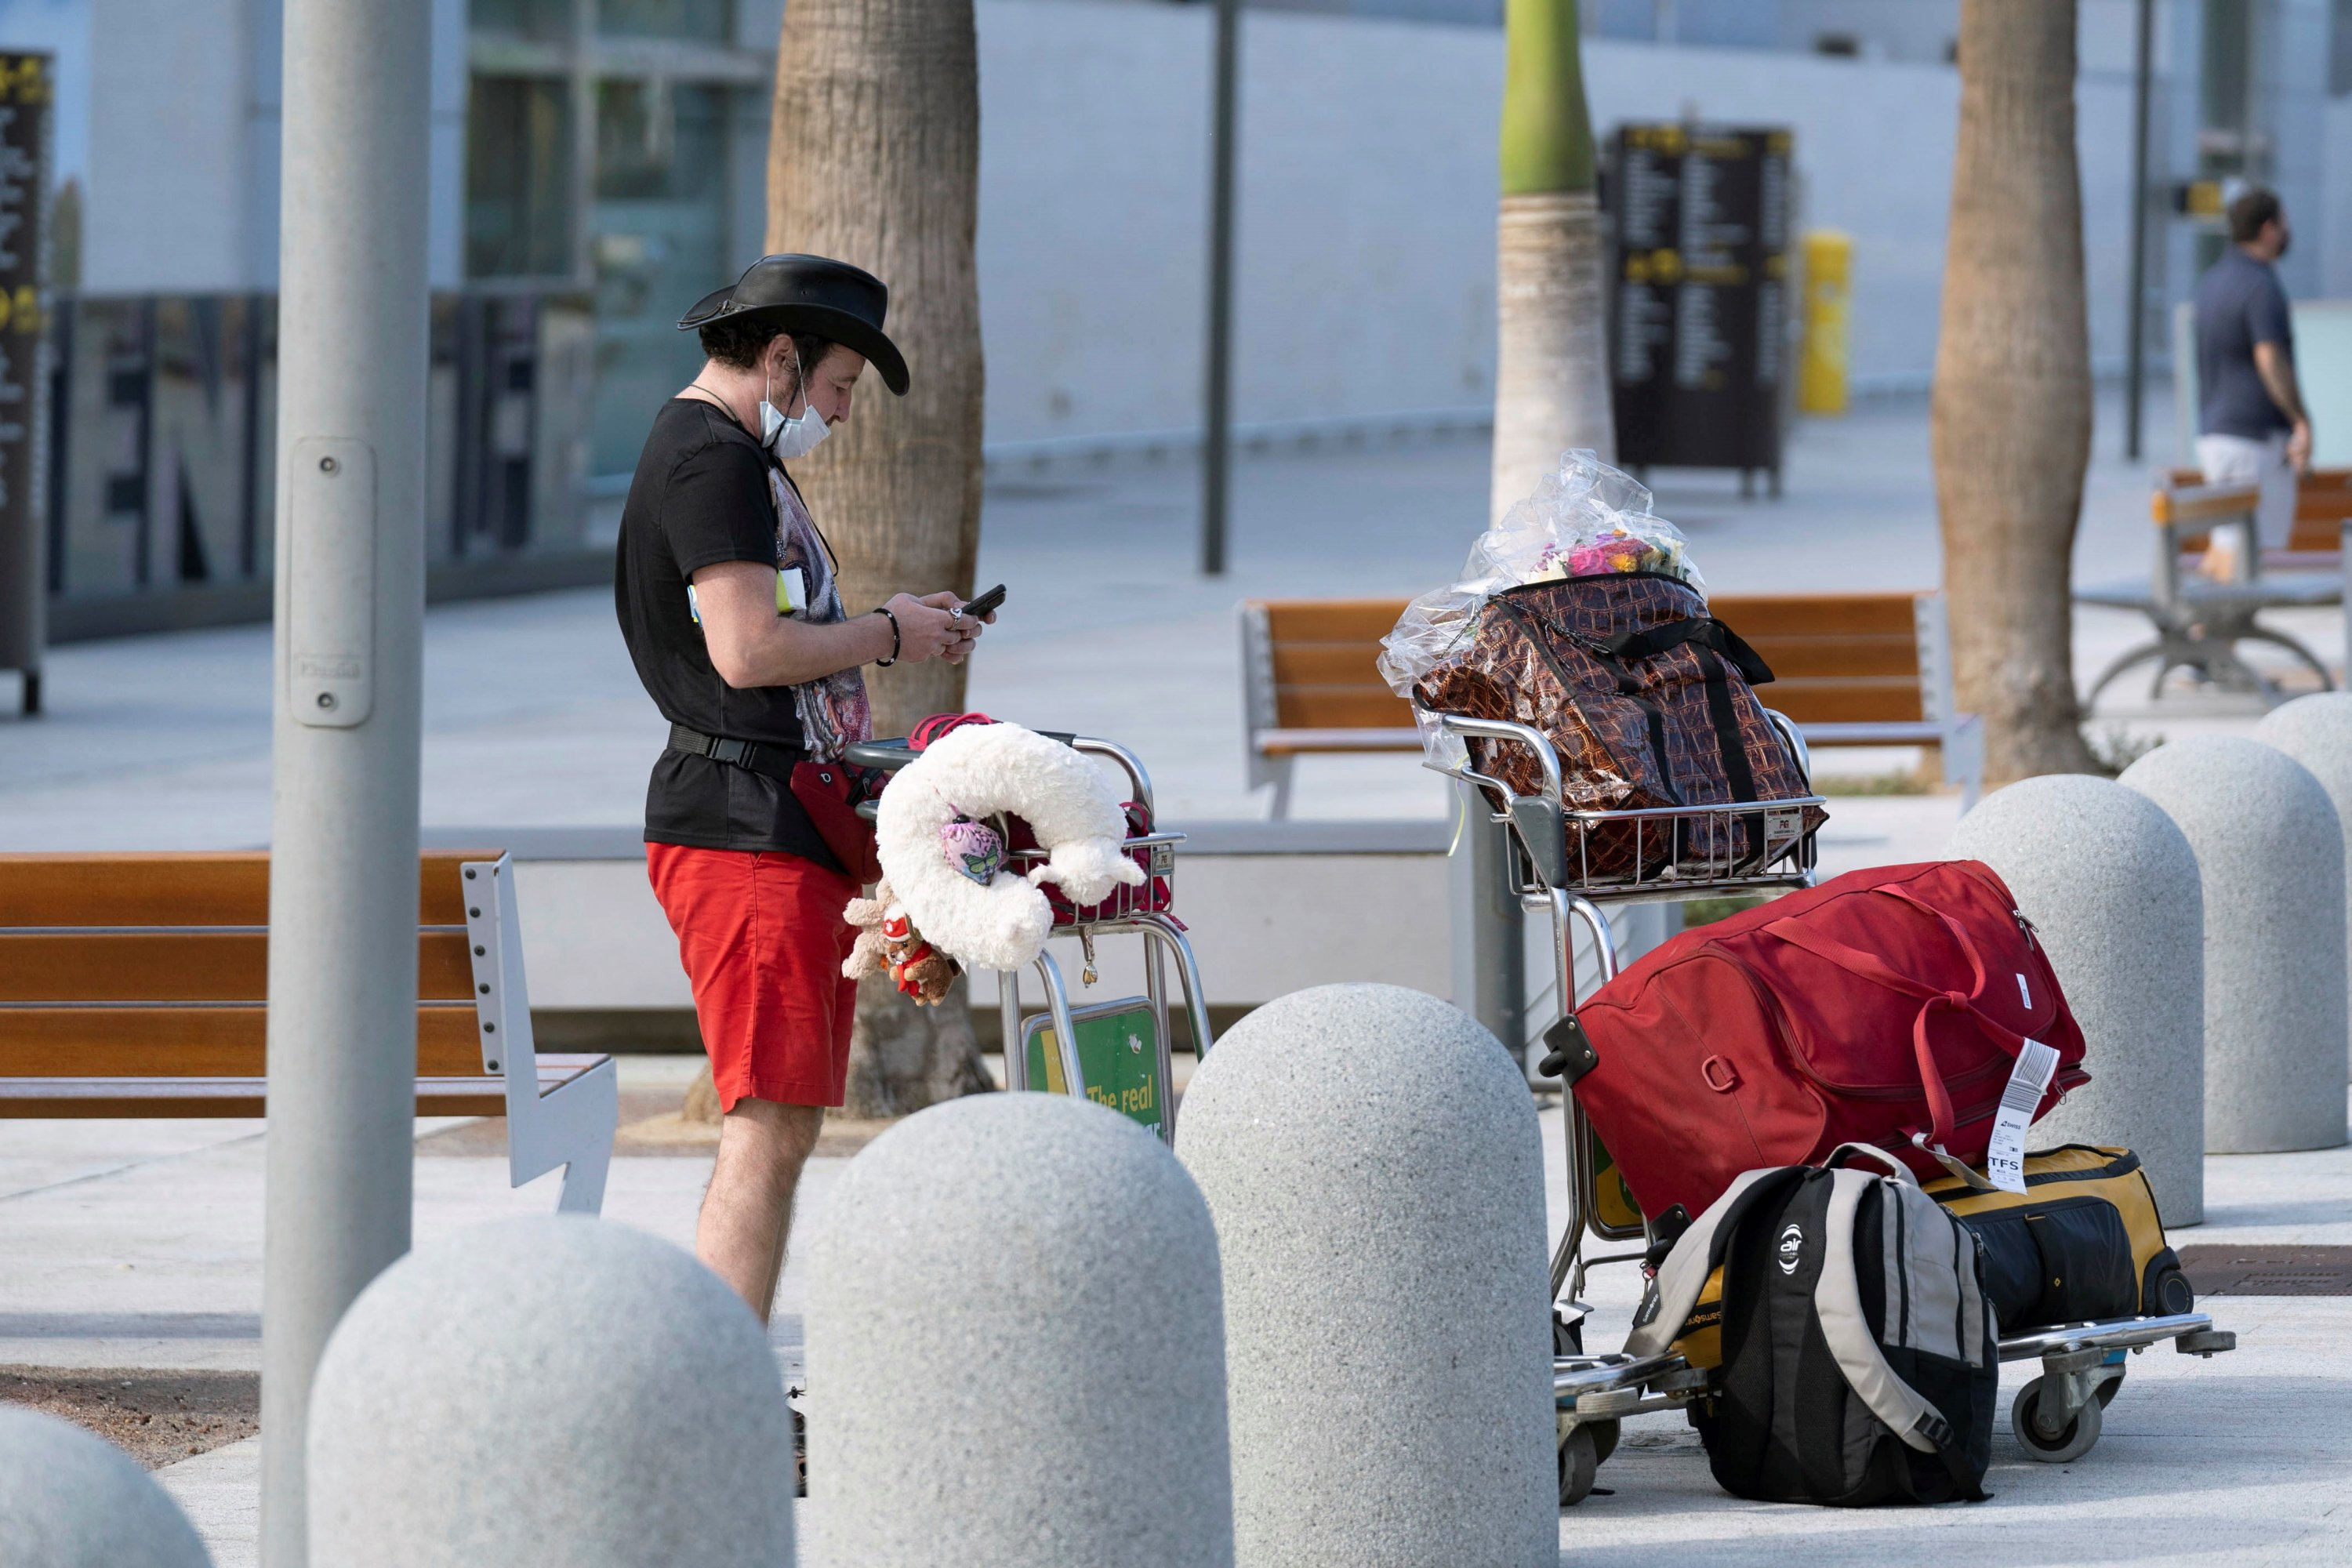 A tourist checks his cellphone next to his luggage after arriving, outside Tenerife Sur international airport in Tenerife, Canary Islands, Spain, Oct. 24, 2020. (EPA Photo)